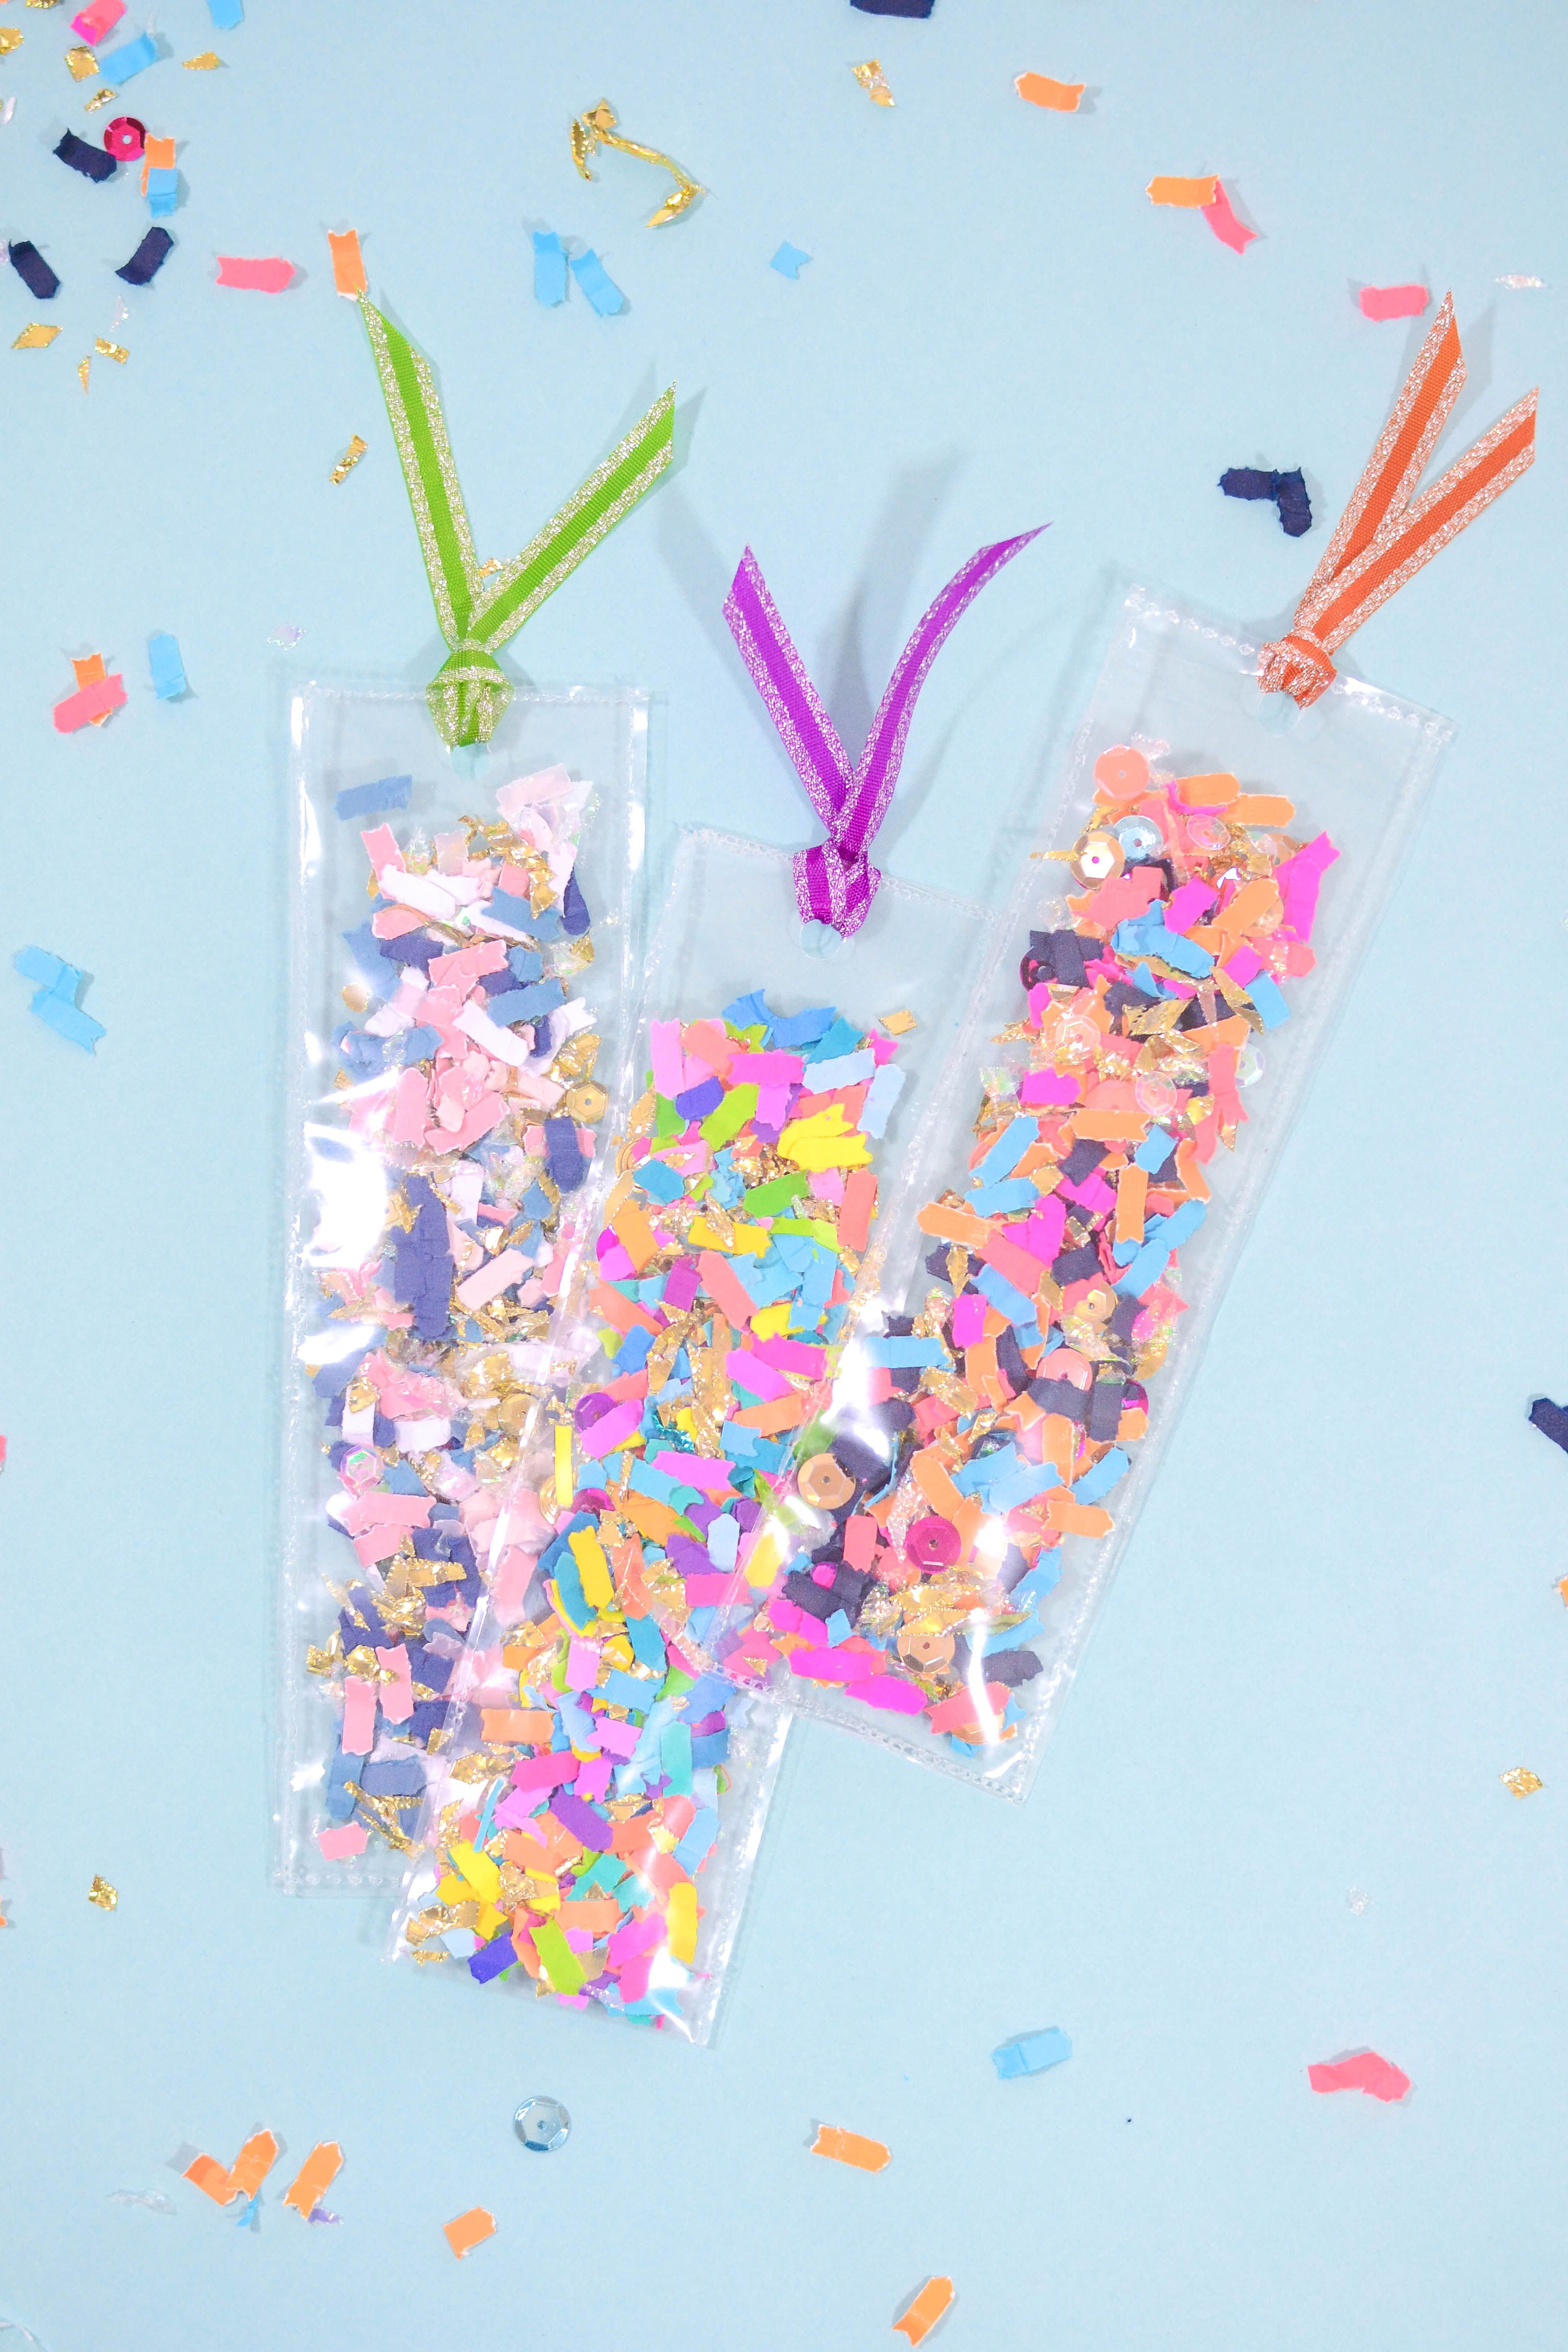 3 Easy Diy Storage Ideas For Small Kitchen: Make Your Own Confetti Bookmarks!